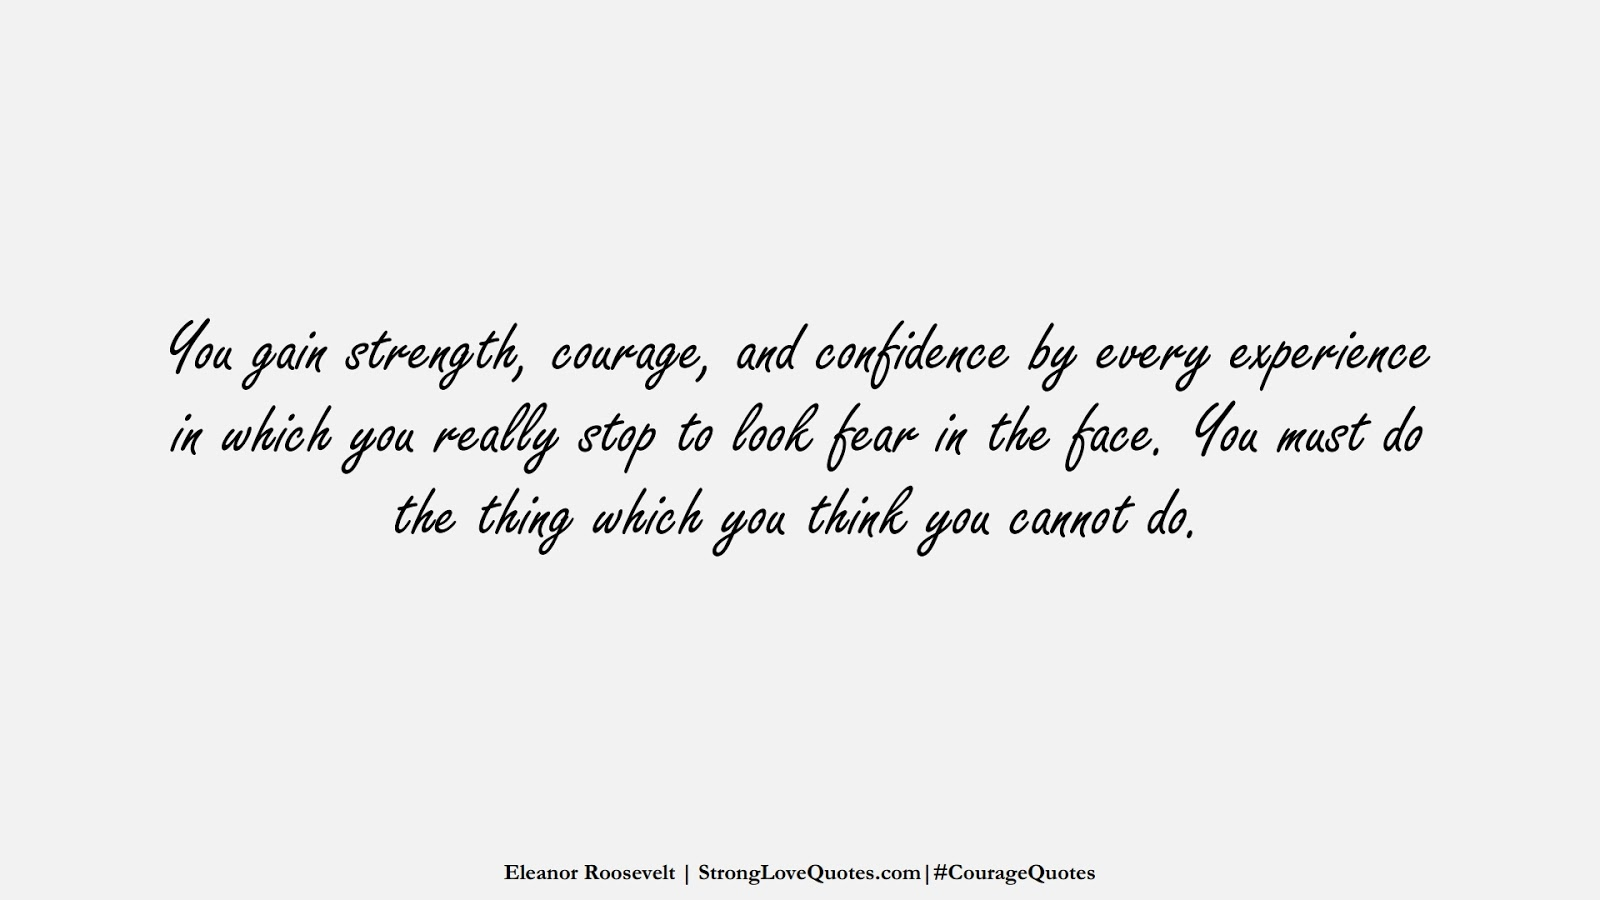 You gain strength, courage, and confidence by every experience in which you really stop to look fear in the face. You must do the thing which you think you cannot do. (Eleanor Roosevelt);  #CourageQuotes